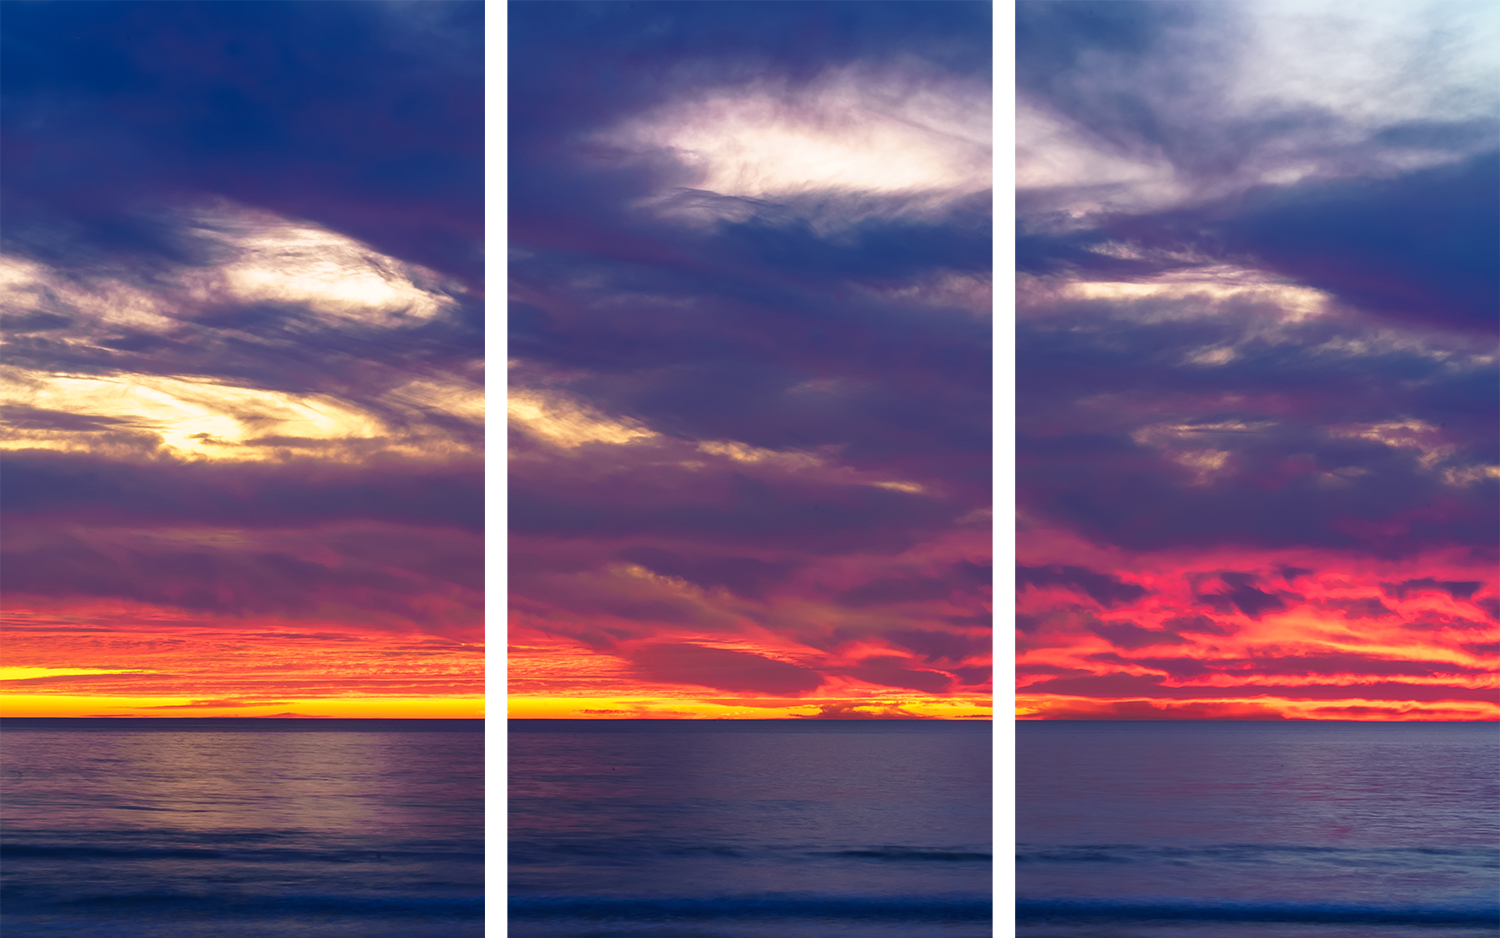 Pacific beach fire triptych zeabcj